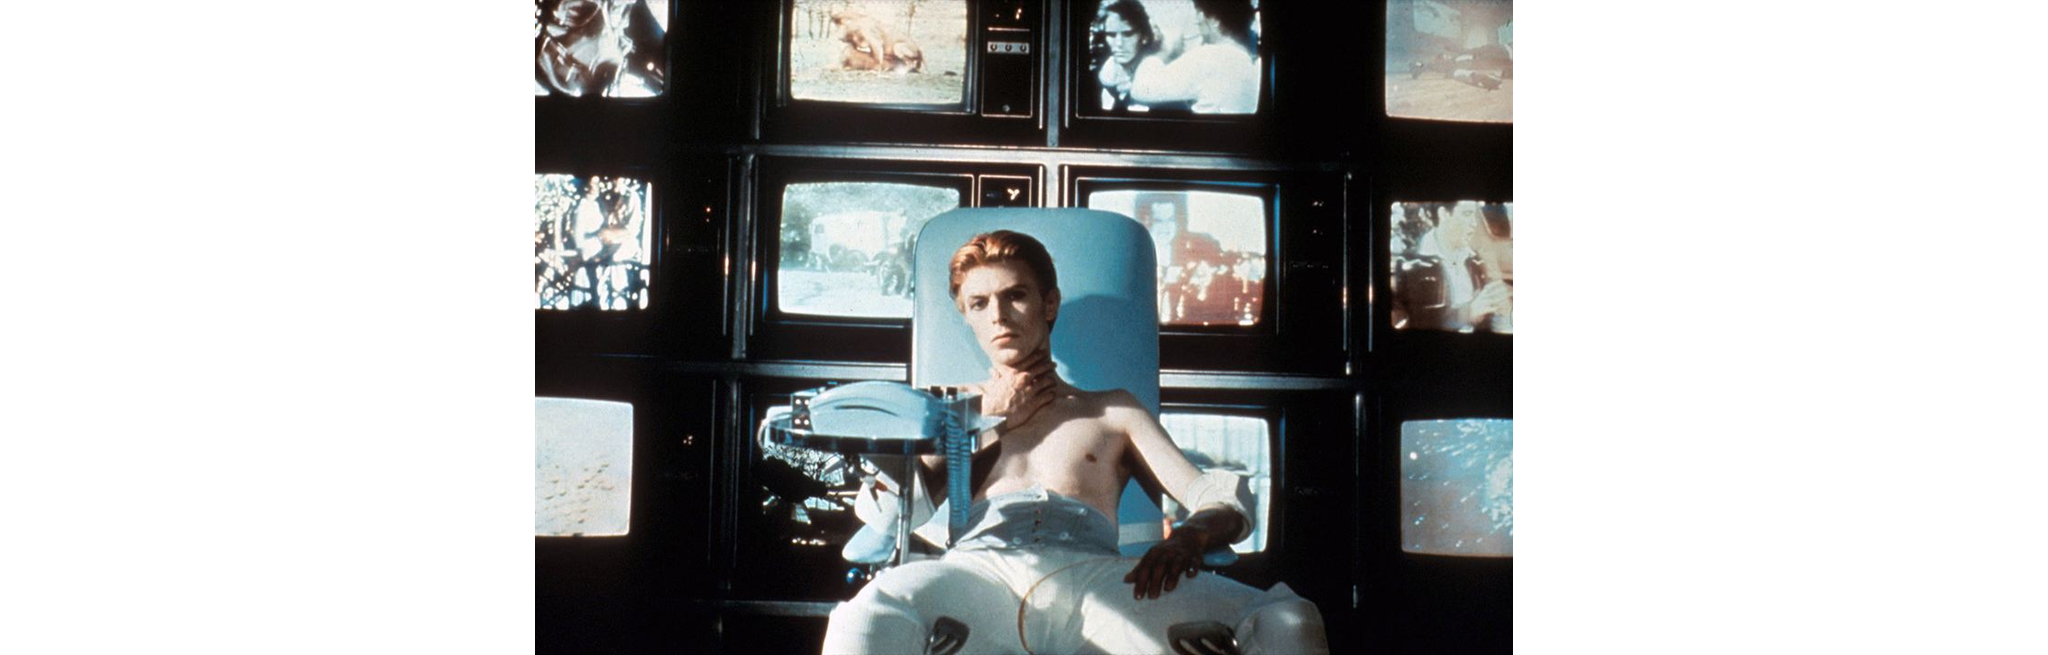 "Movie poster for ""THE MAN WHO FELL TO EARTH (1976)"""